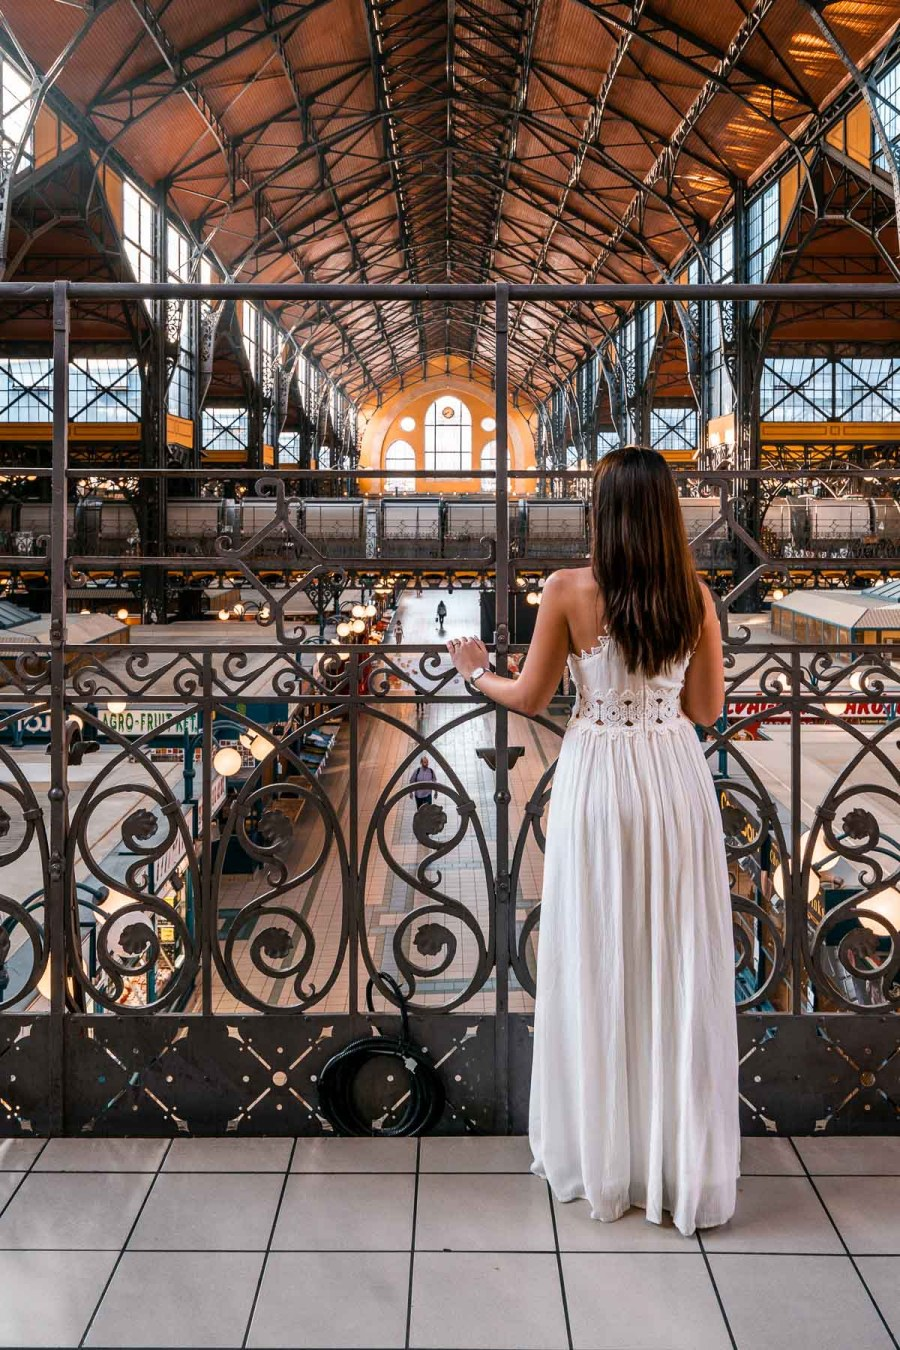 Girl in a white dress standing in the Great Market Hall in Budapest